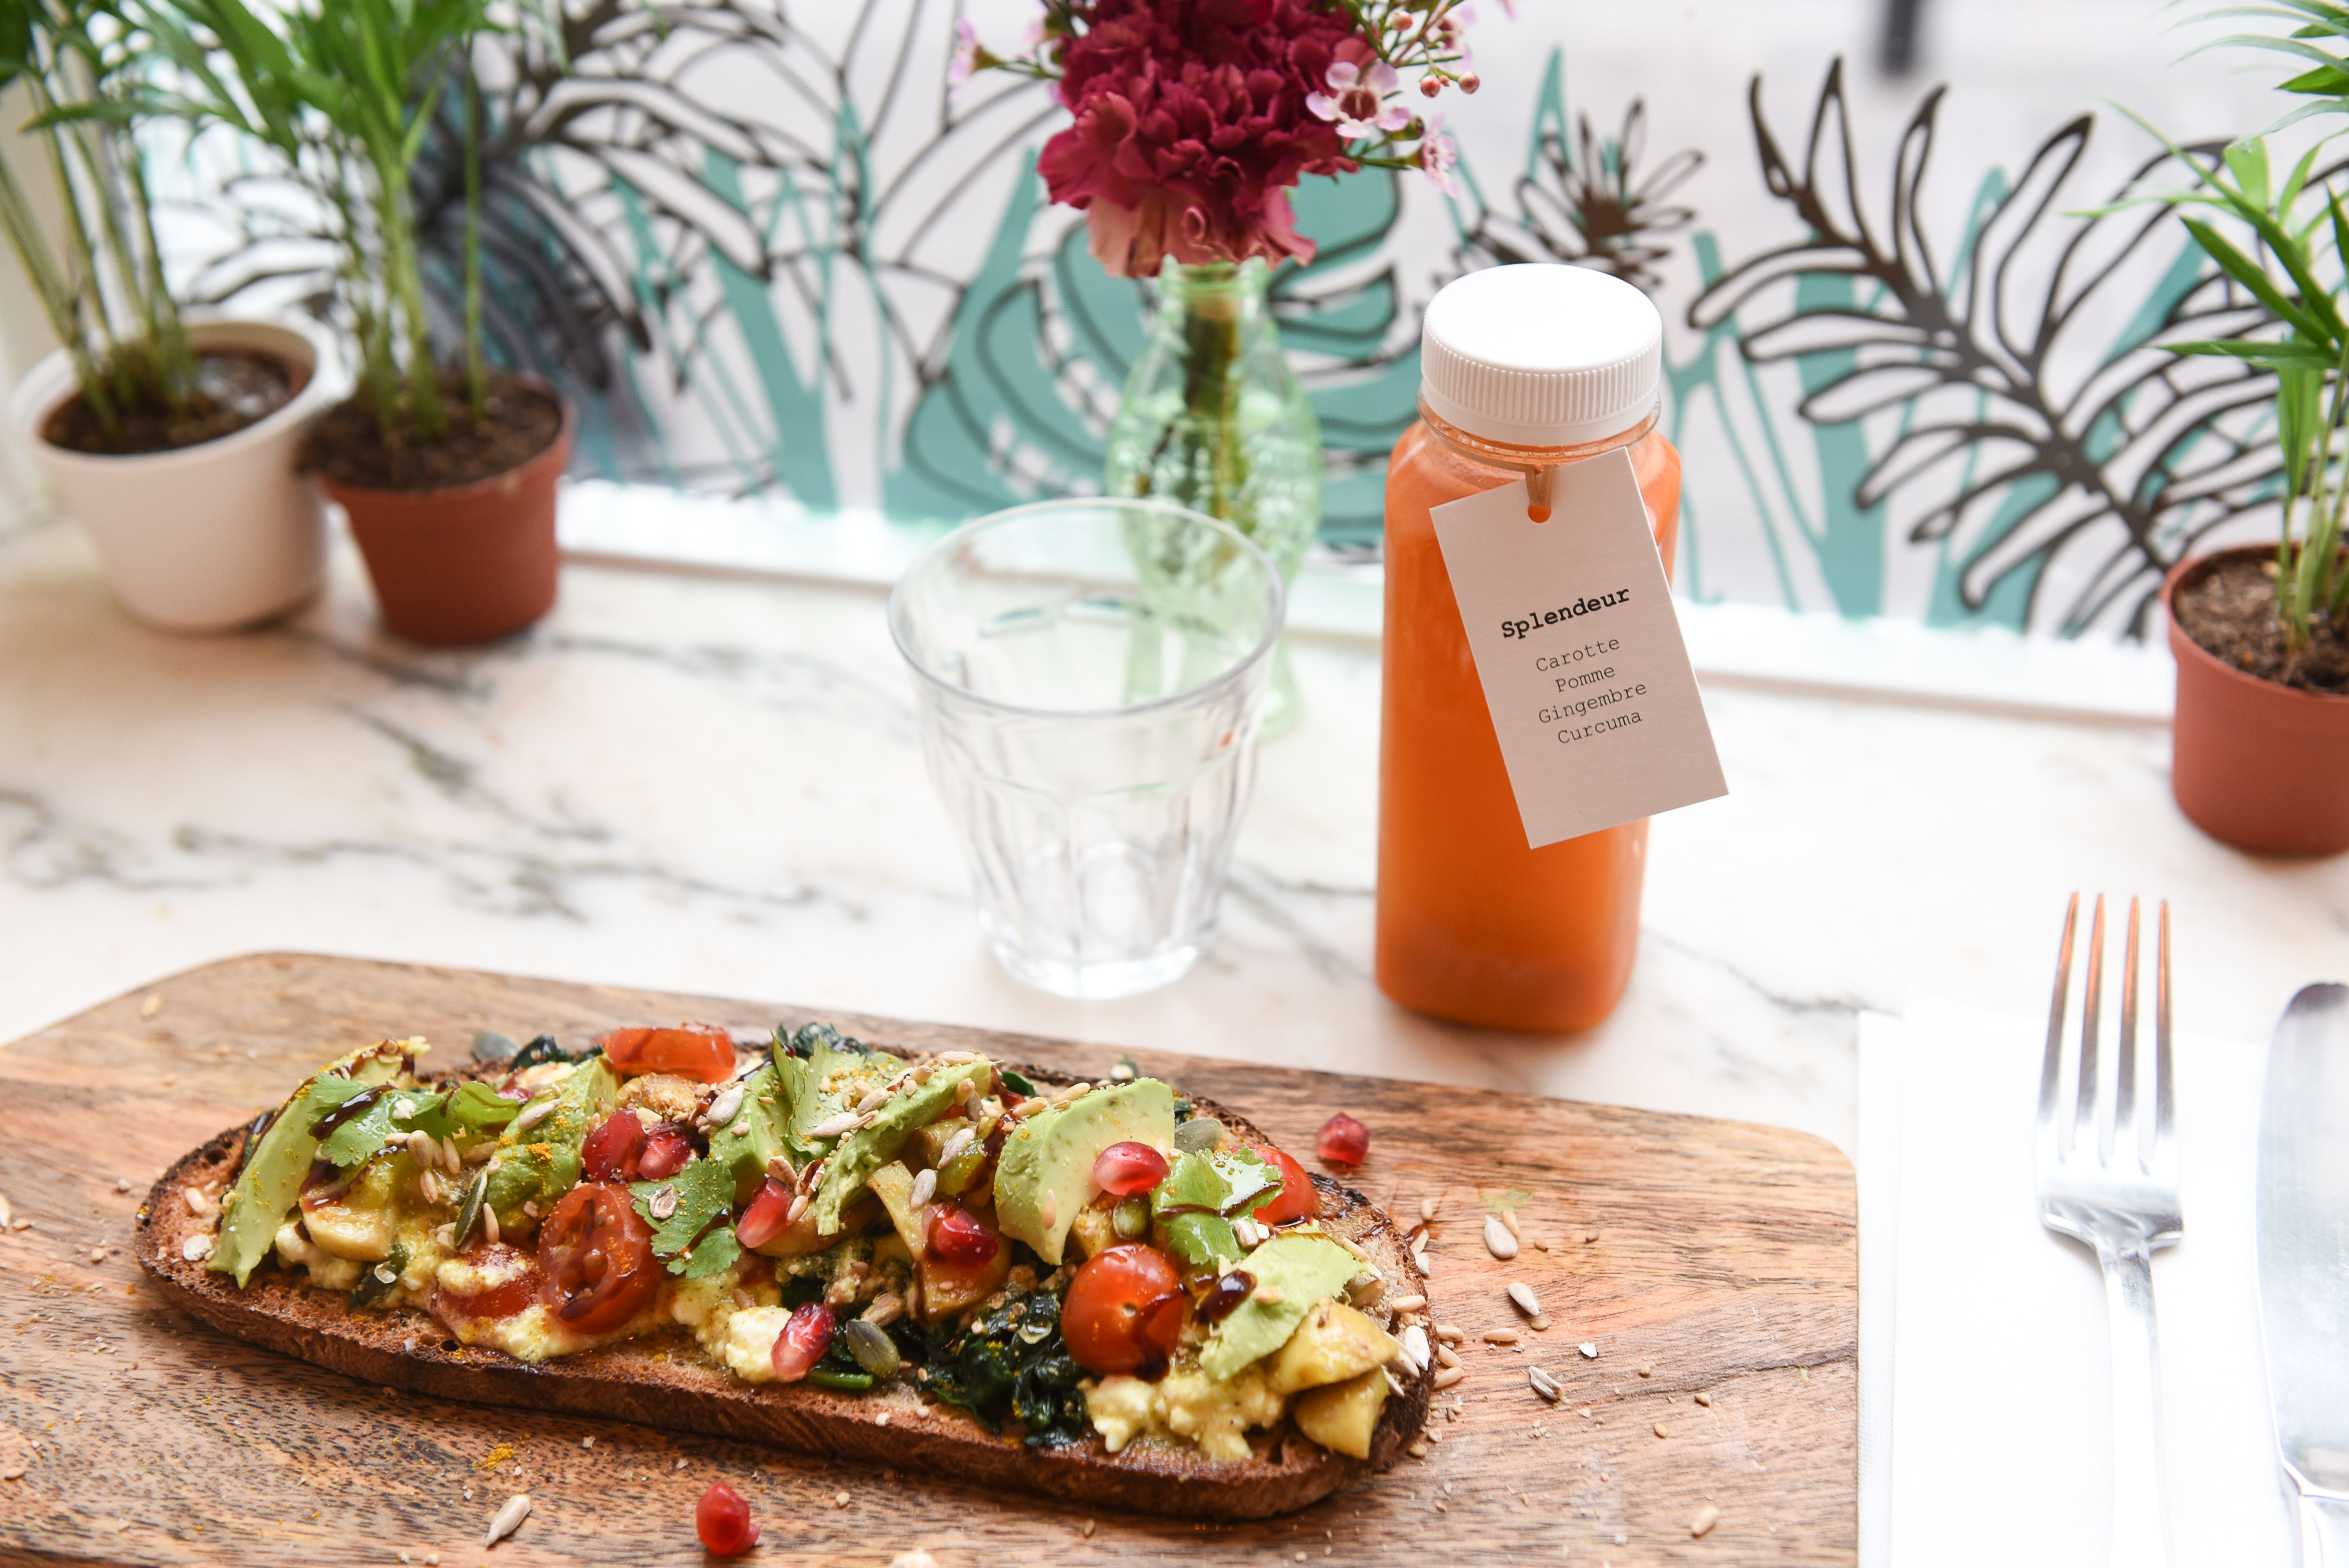 tartine avocado toast vegetarien jus detoxplat veggie vegan heathy l'abattoir vegatl restaurant vegie paris 18 healthy food